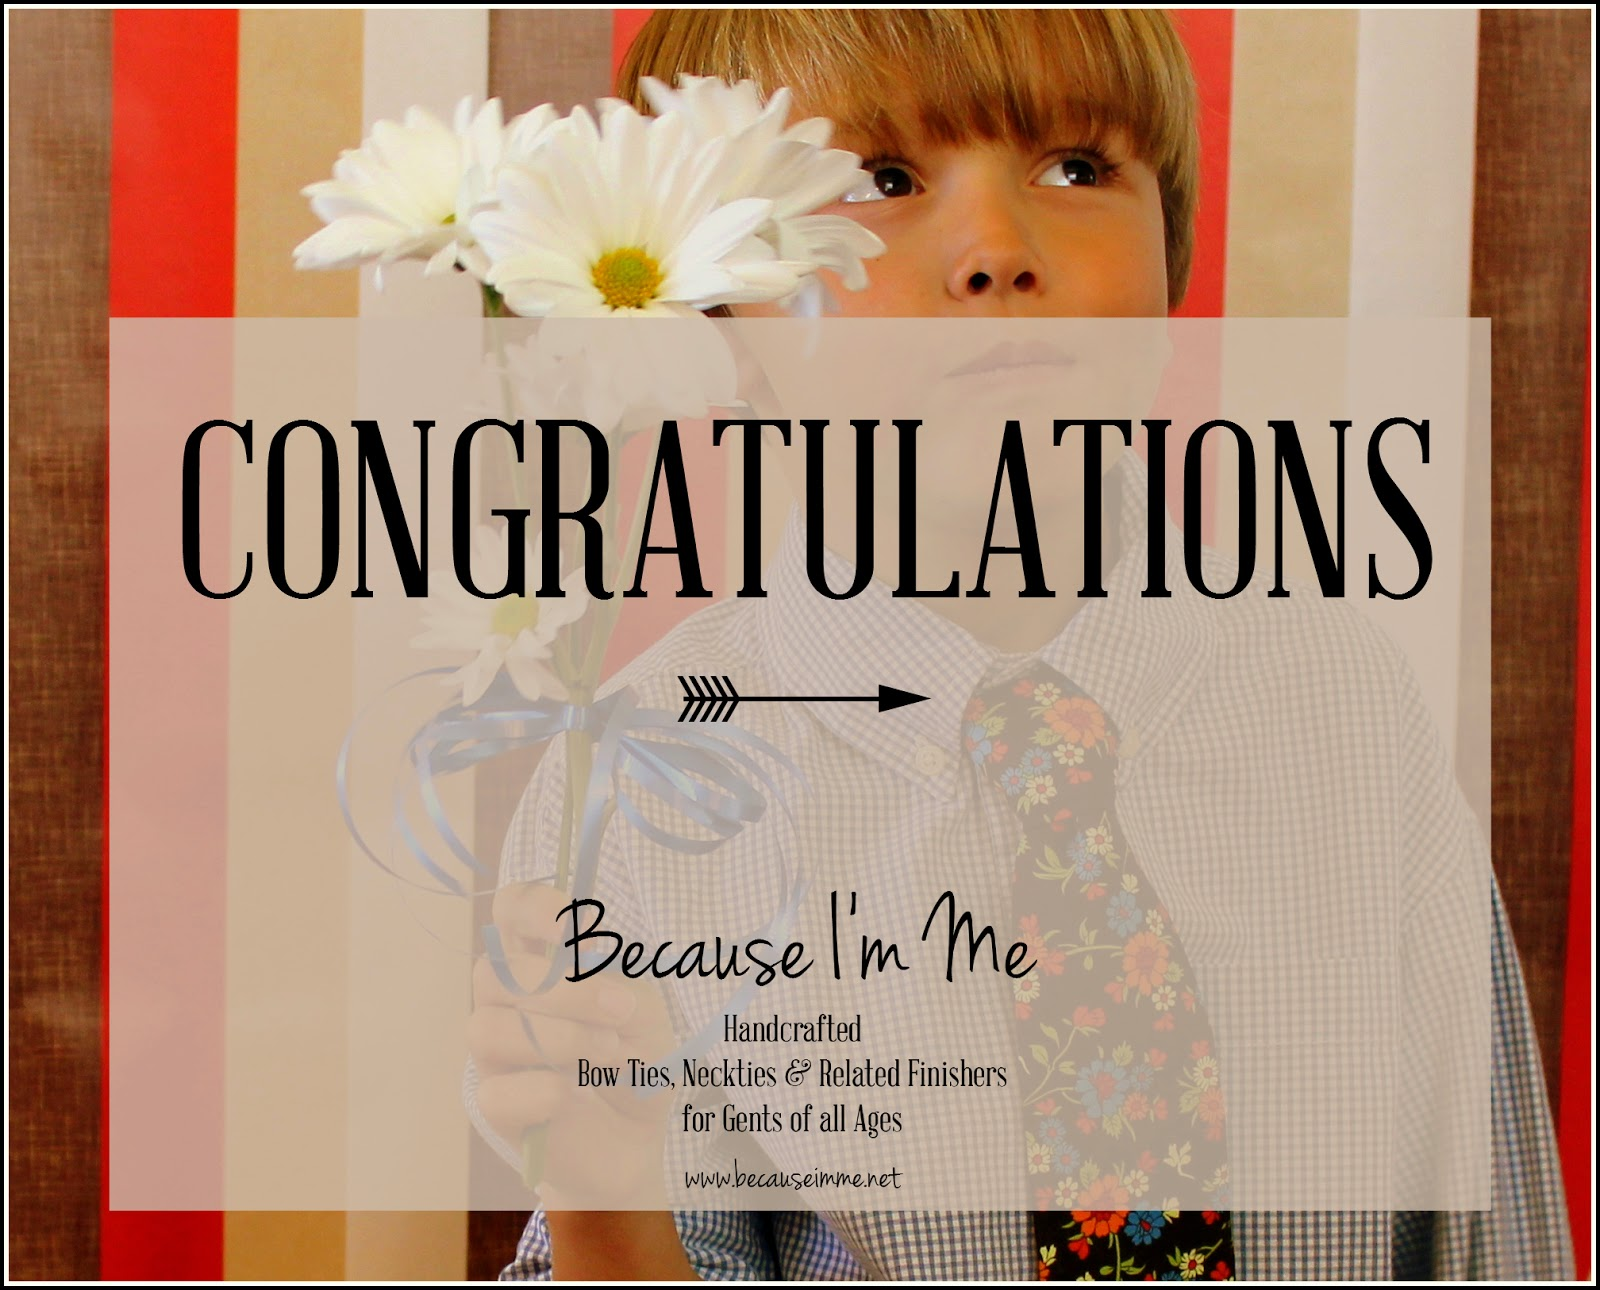 Because I'm Me giveaway winner